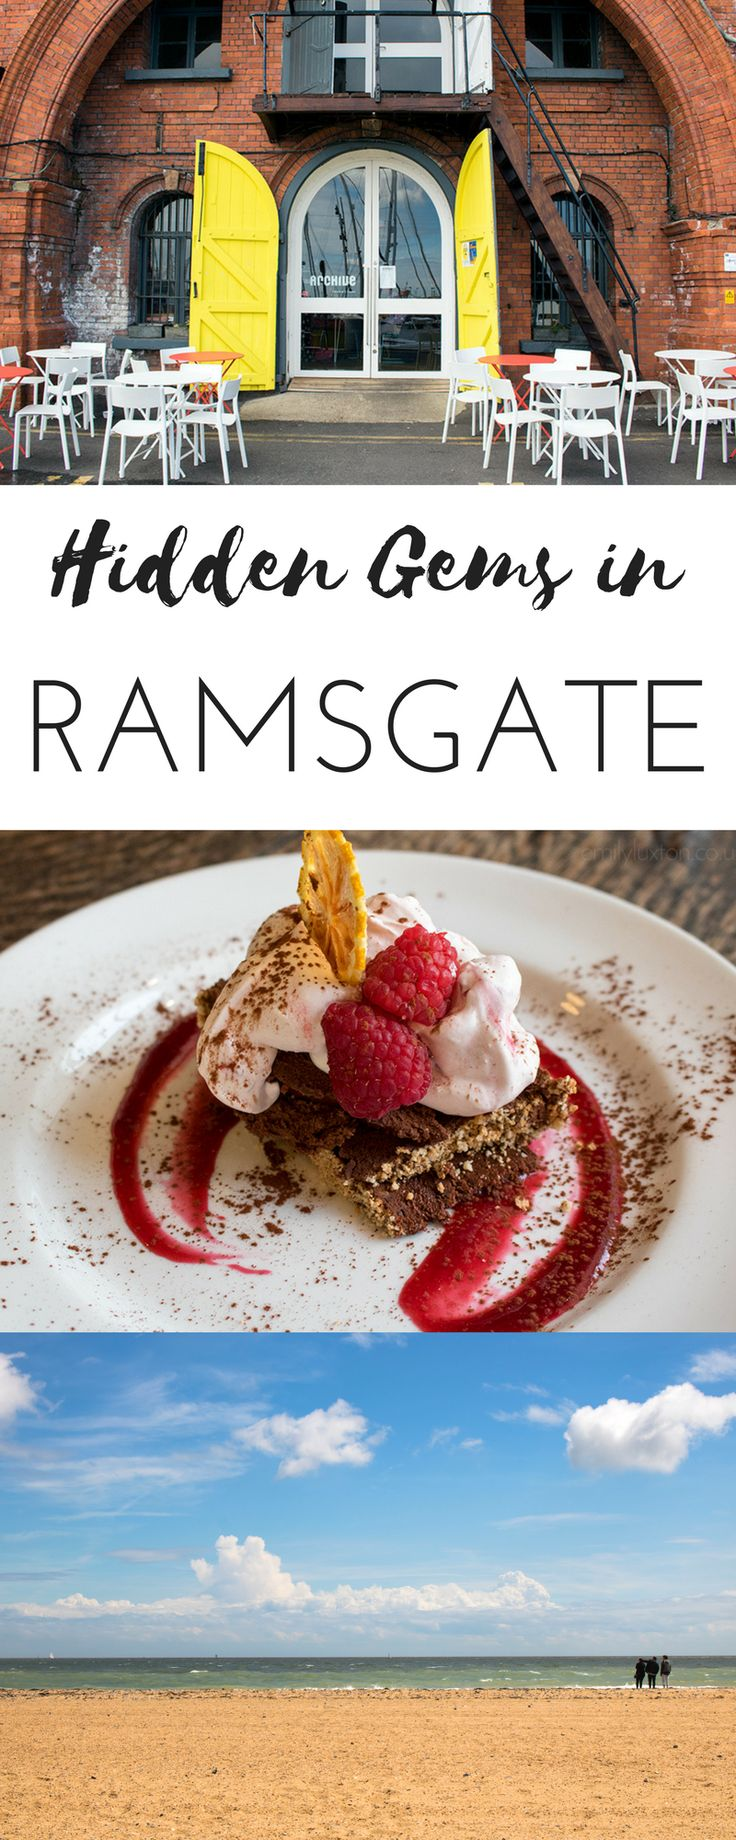 Discovering the top hidden gems in Ramsgate - from food and shopping to unique things to do. On the Kent coast in South East England.